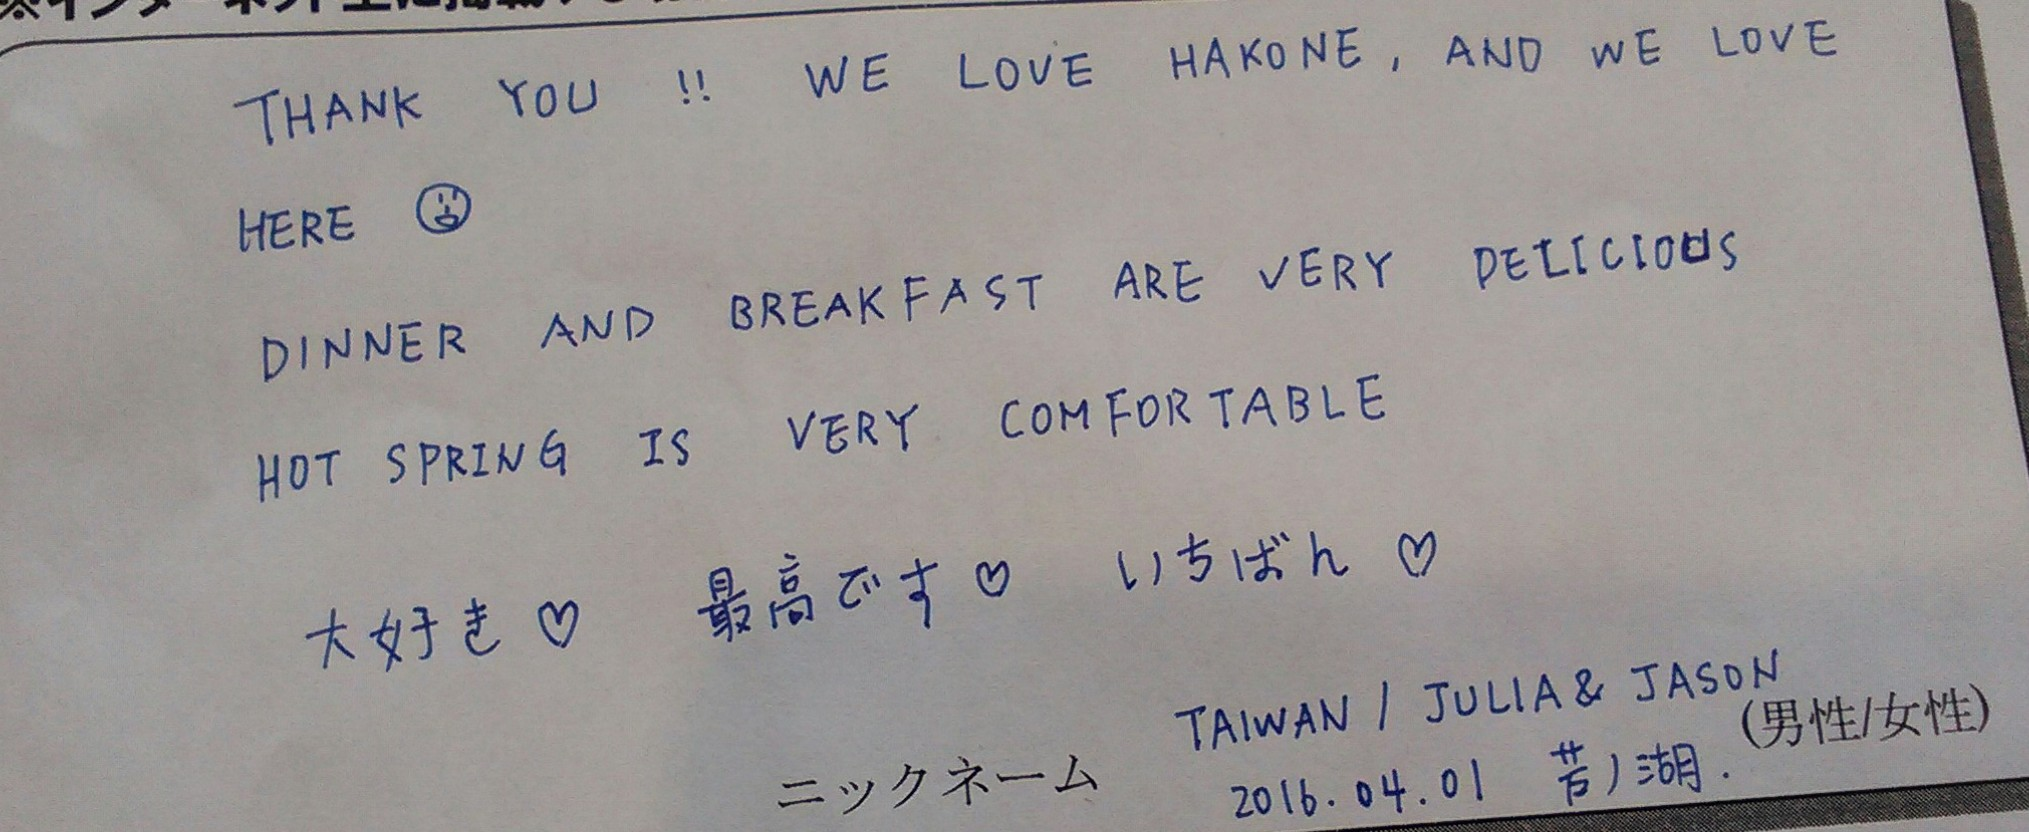 THANK YOU !! WE LOVE HAKONE AND WE LOVE HERE <br /> DINNER AND BREKFAST ARE VERY DELICIOUS<br /> HOT SPRING IS VERY COMFORTABLE <br /> 大好き♡ 最高です♡ いちばん♡